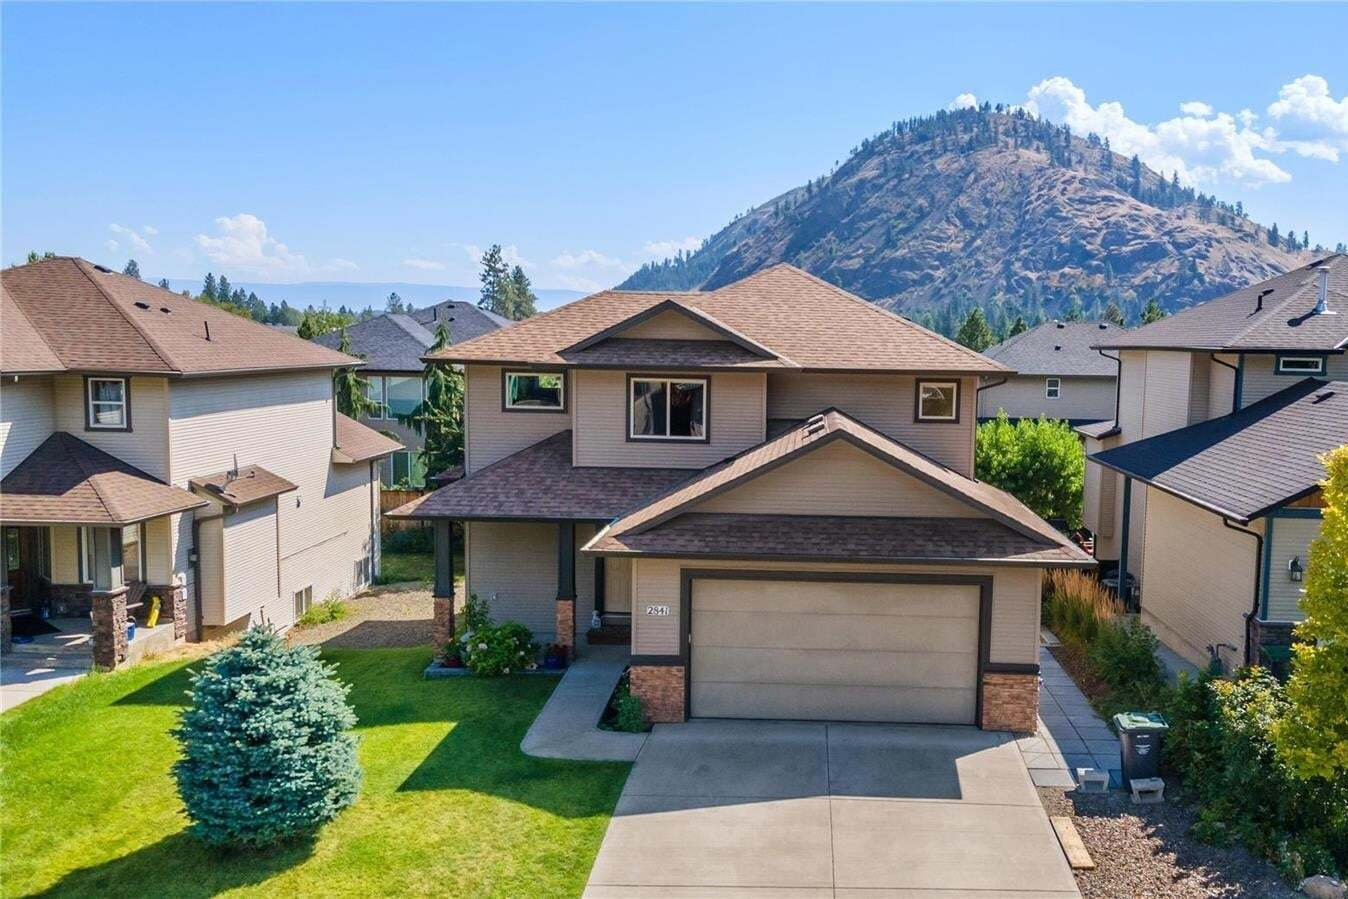 House for sale at 2841 Bentley Rd West Kelowna British Columbia - MLS: 10214882